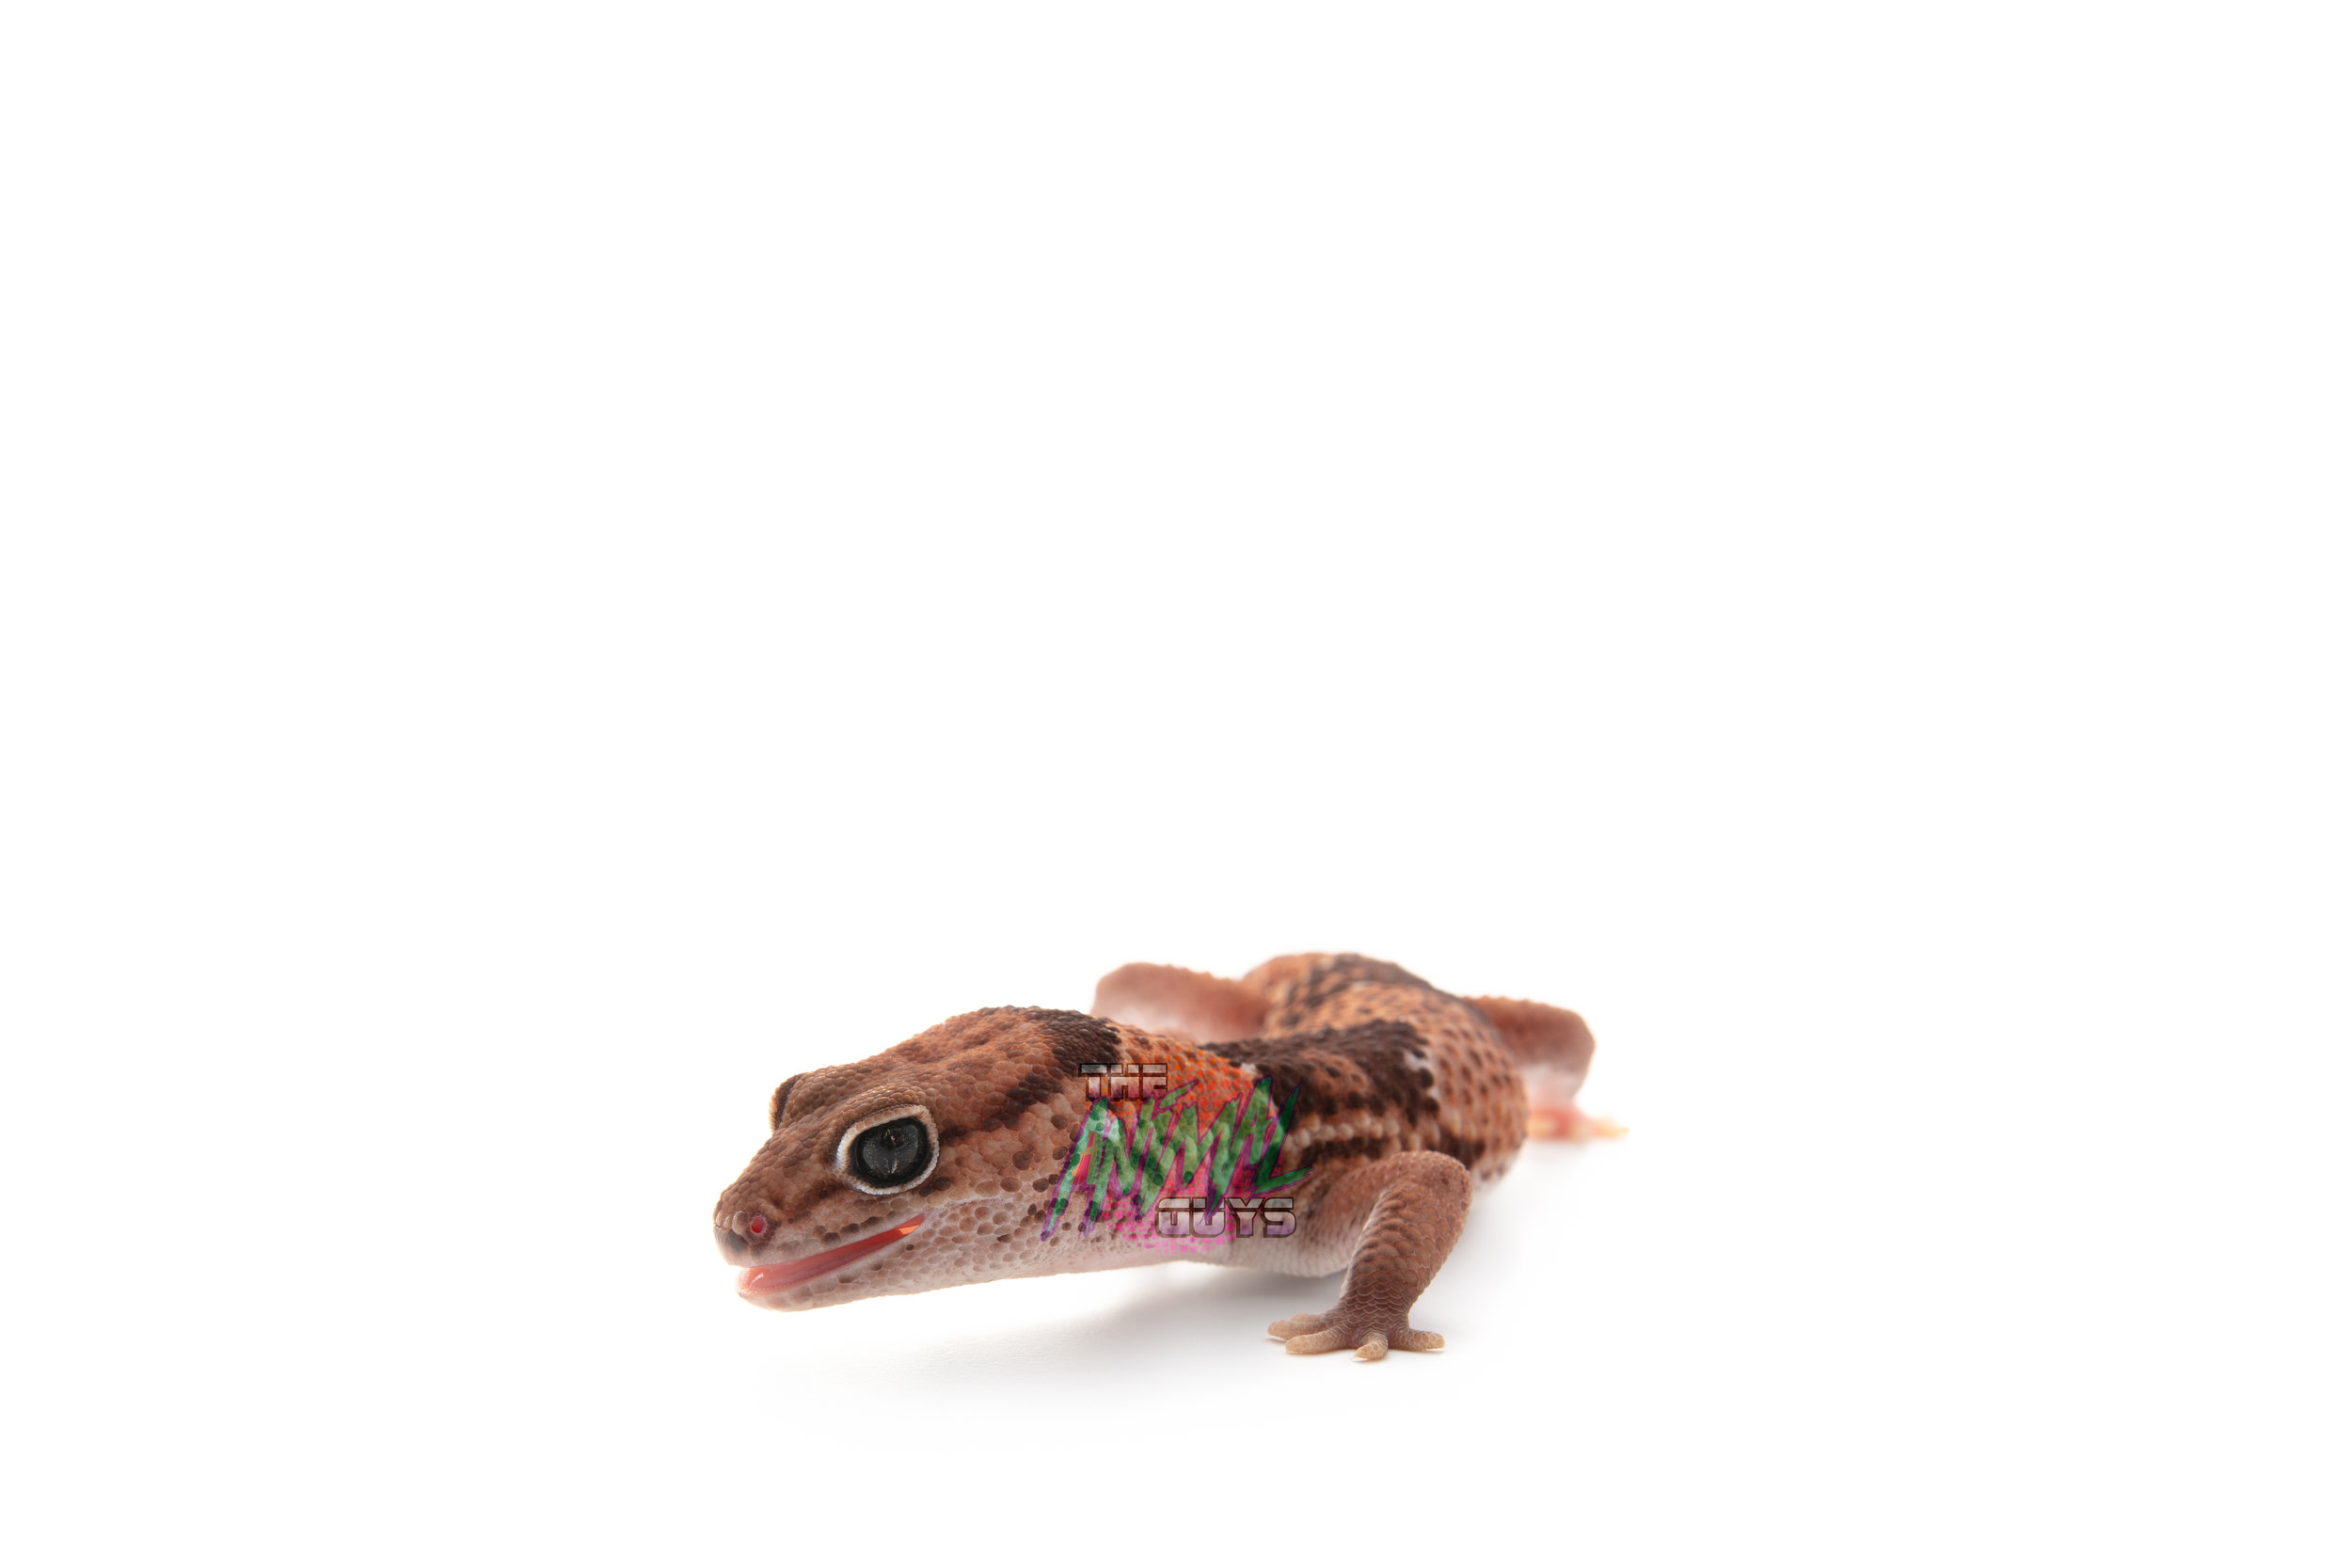 THOR - FAT TAIL GECKO - 2yr OLDCAPTIVE BORN/RAISED BY US!EATS CRICKETS/WORMS